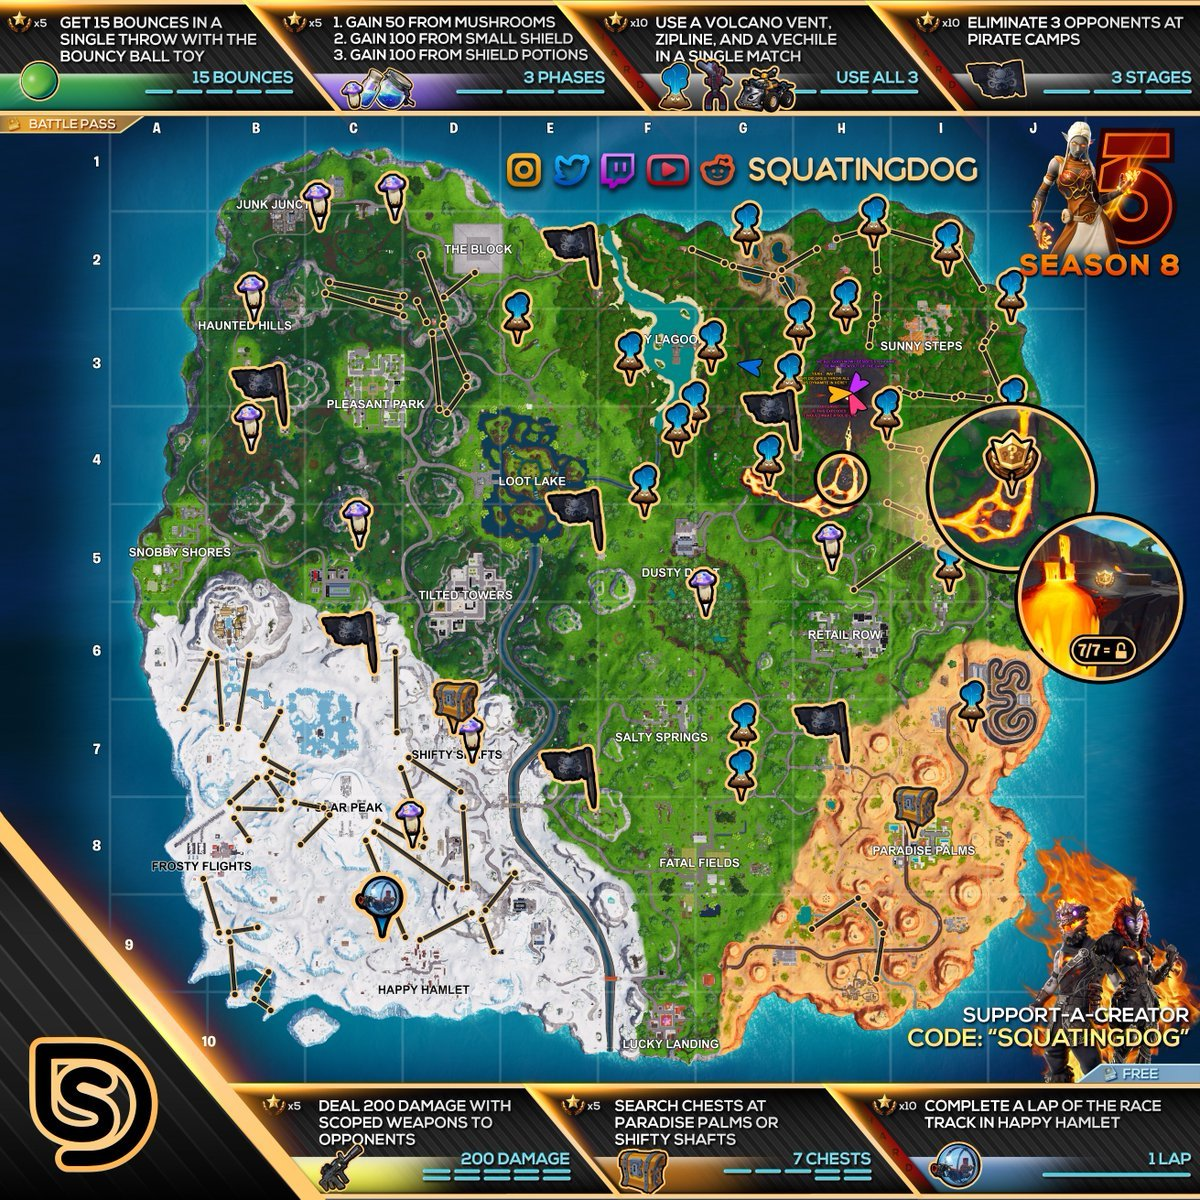 Week 5 Fortnite Treasure Map Salve O Mundo Fortnite Mobile